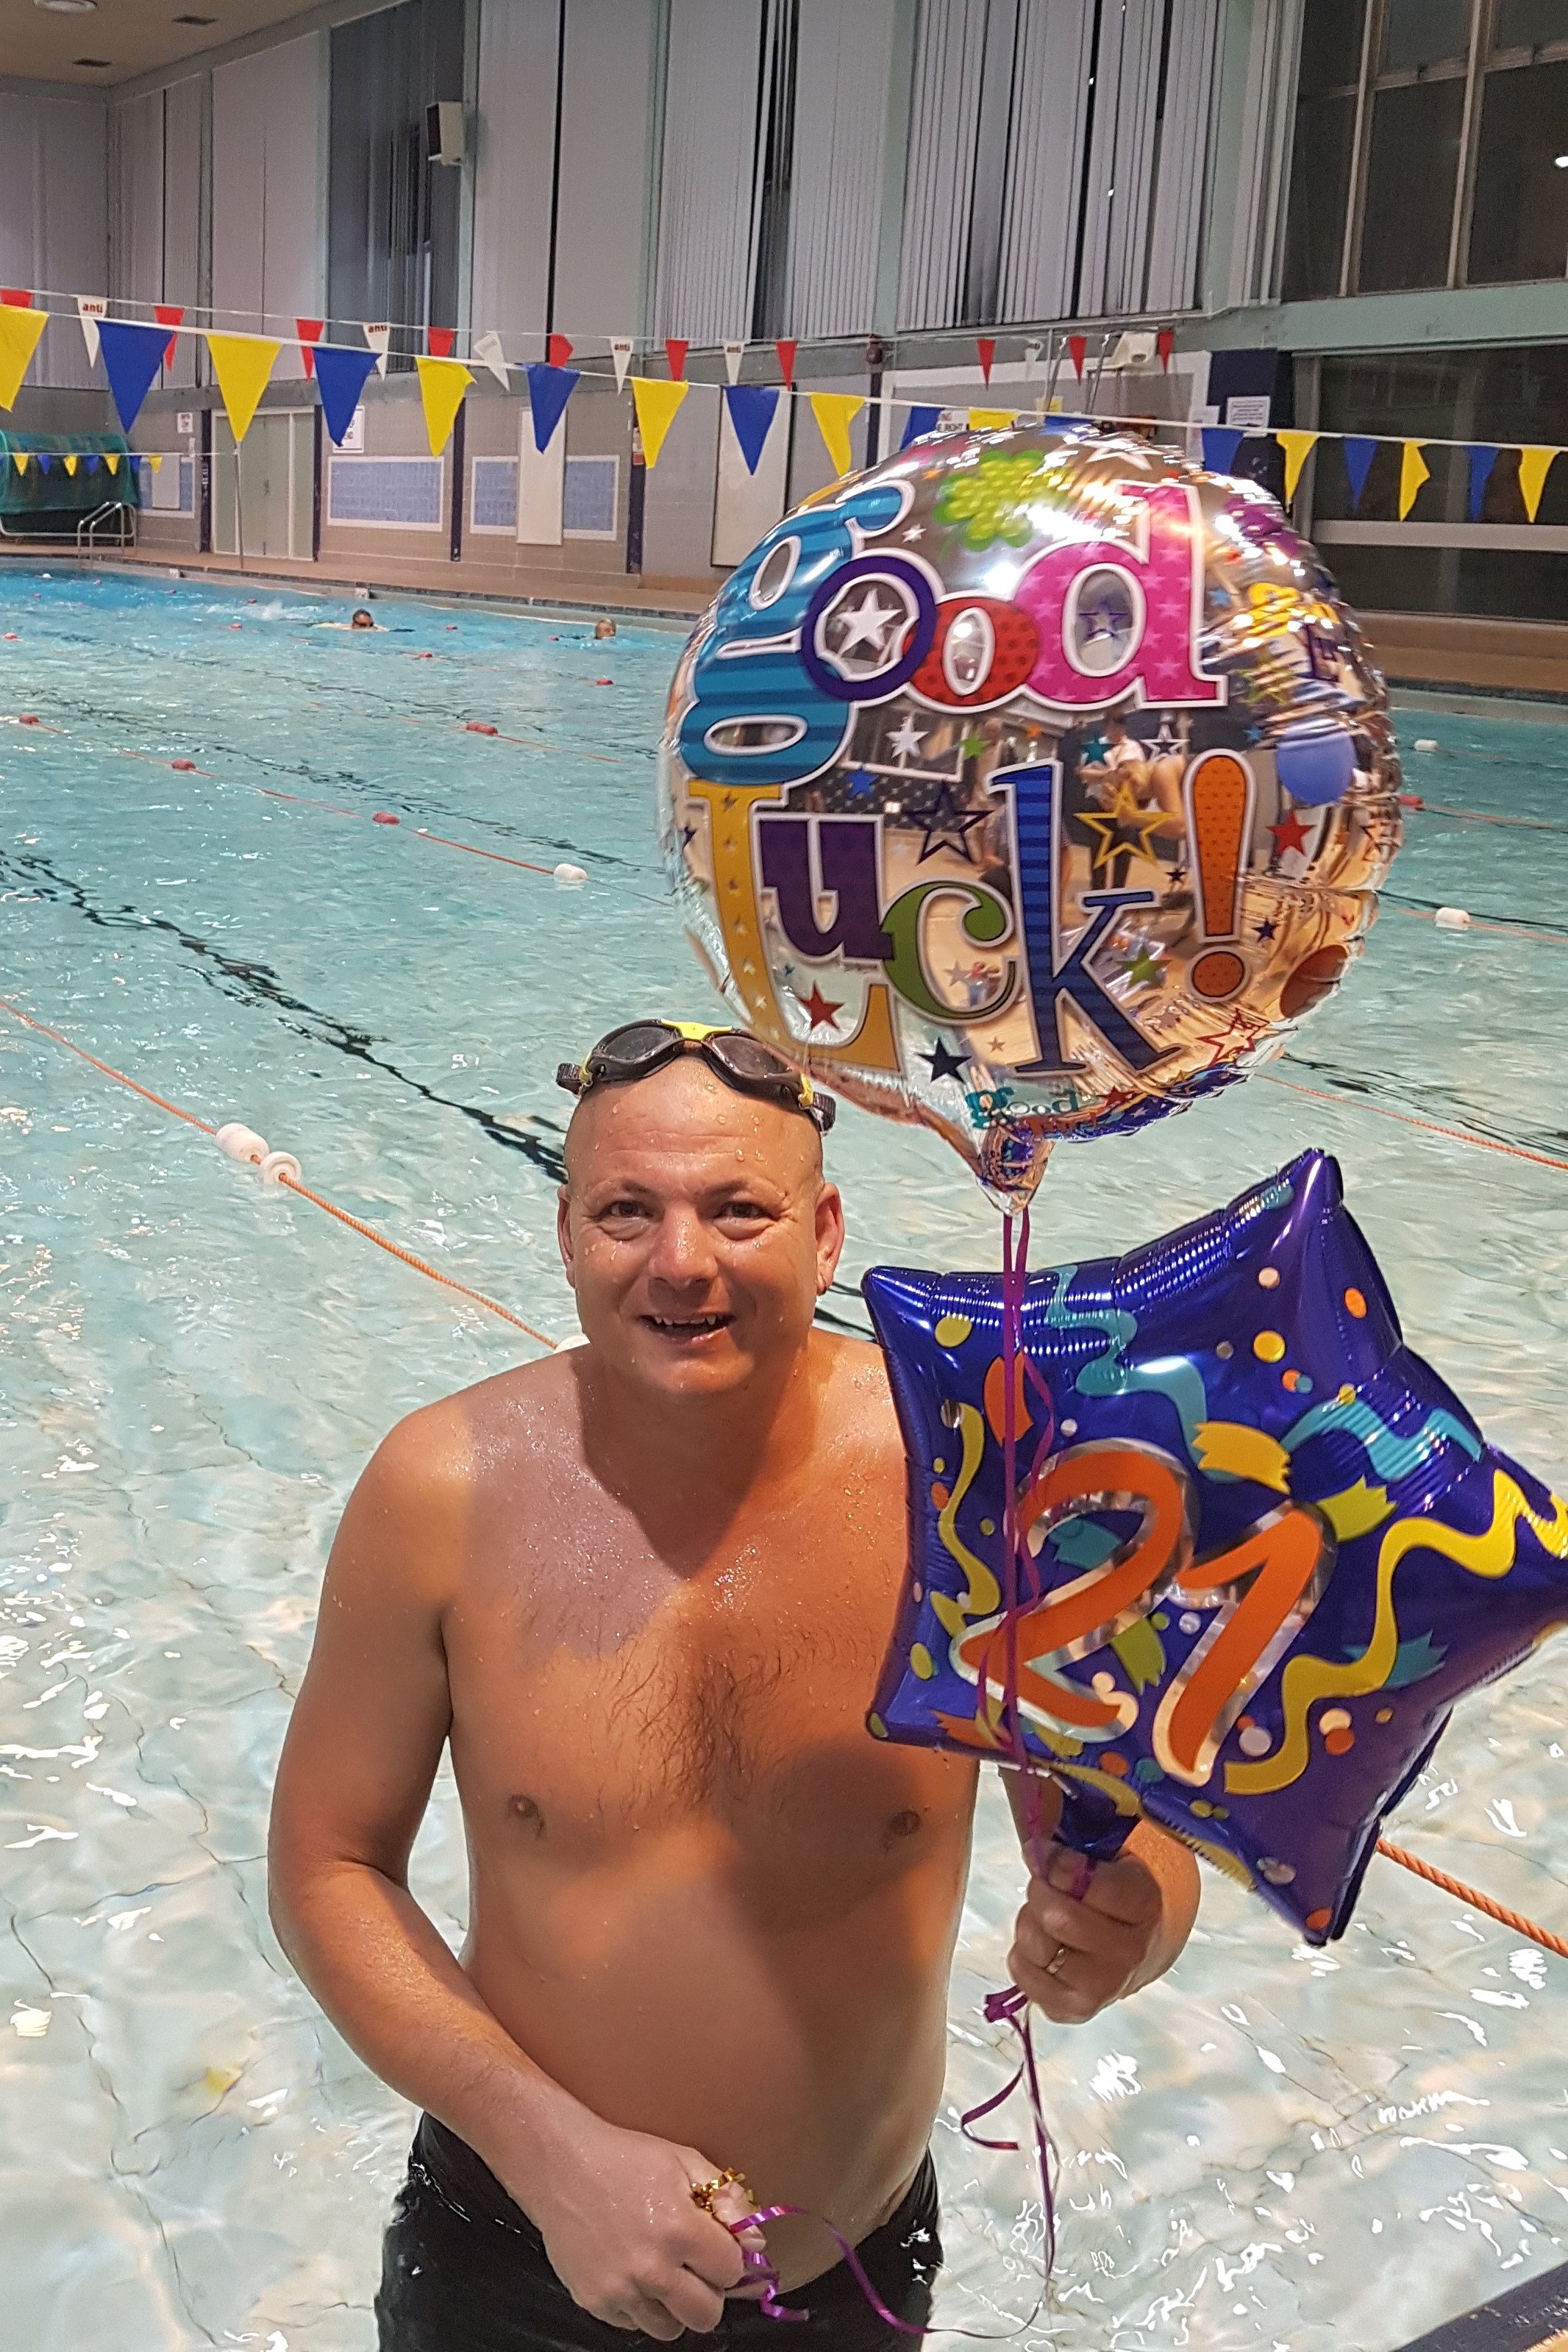 Quarry Bank man Damian Campbell after completing his 21-mile charity swimming challenge at Halesowen Leisure Centre.